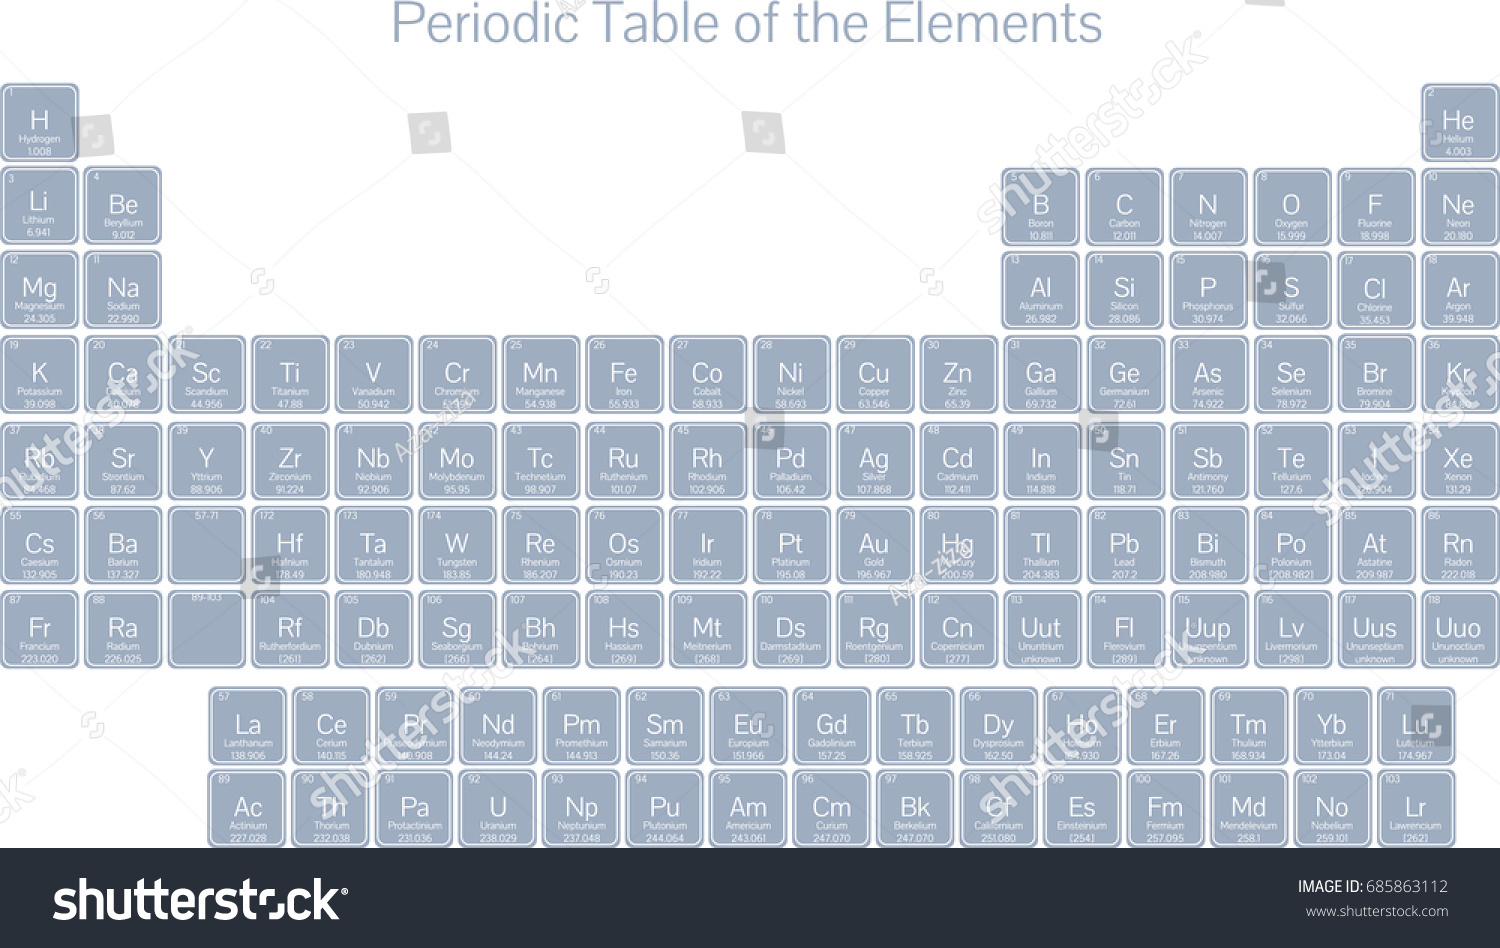 Periodic table mendeleev gallery periodic table images dmitri mendeleev contribution to the periodic table choice image dmitri mendeleev original periodic table image collections gamestrikefo Choice Image